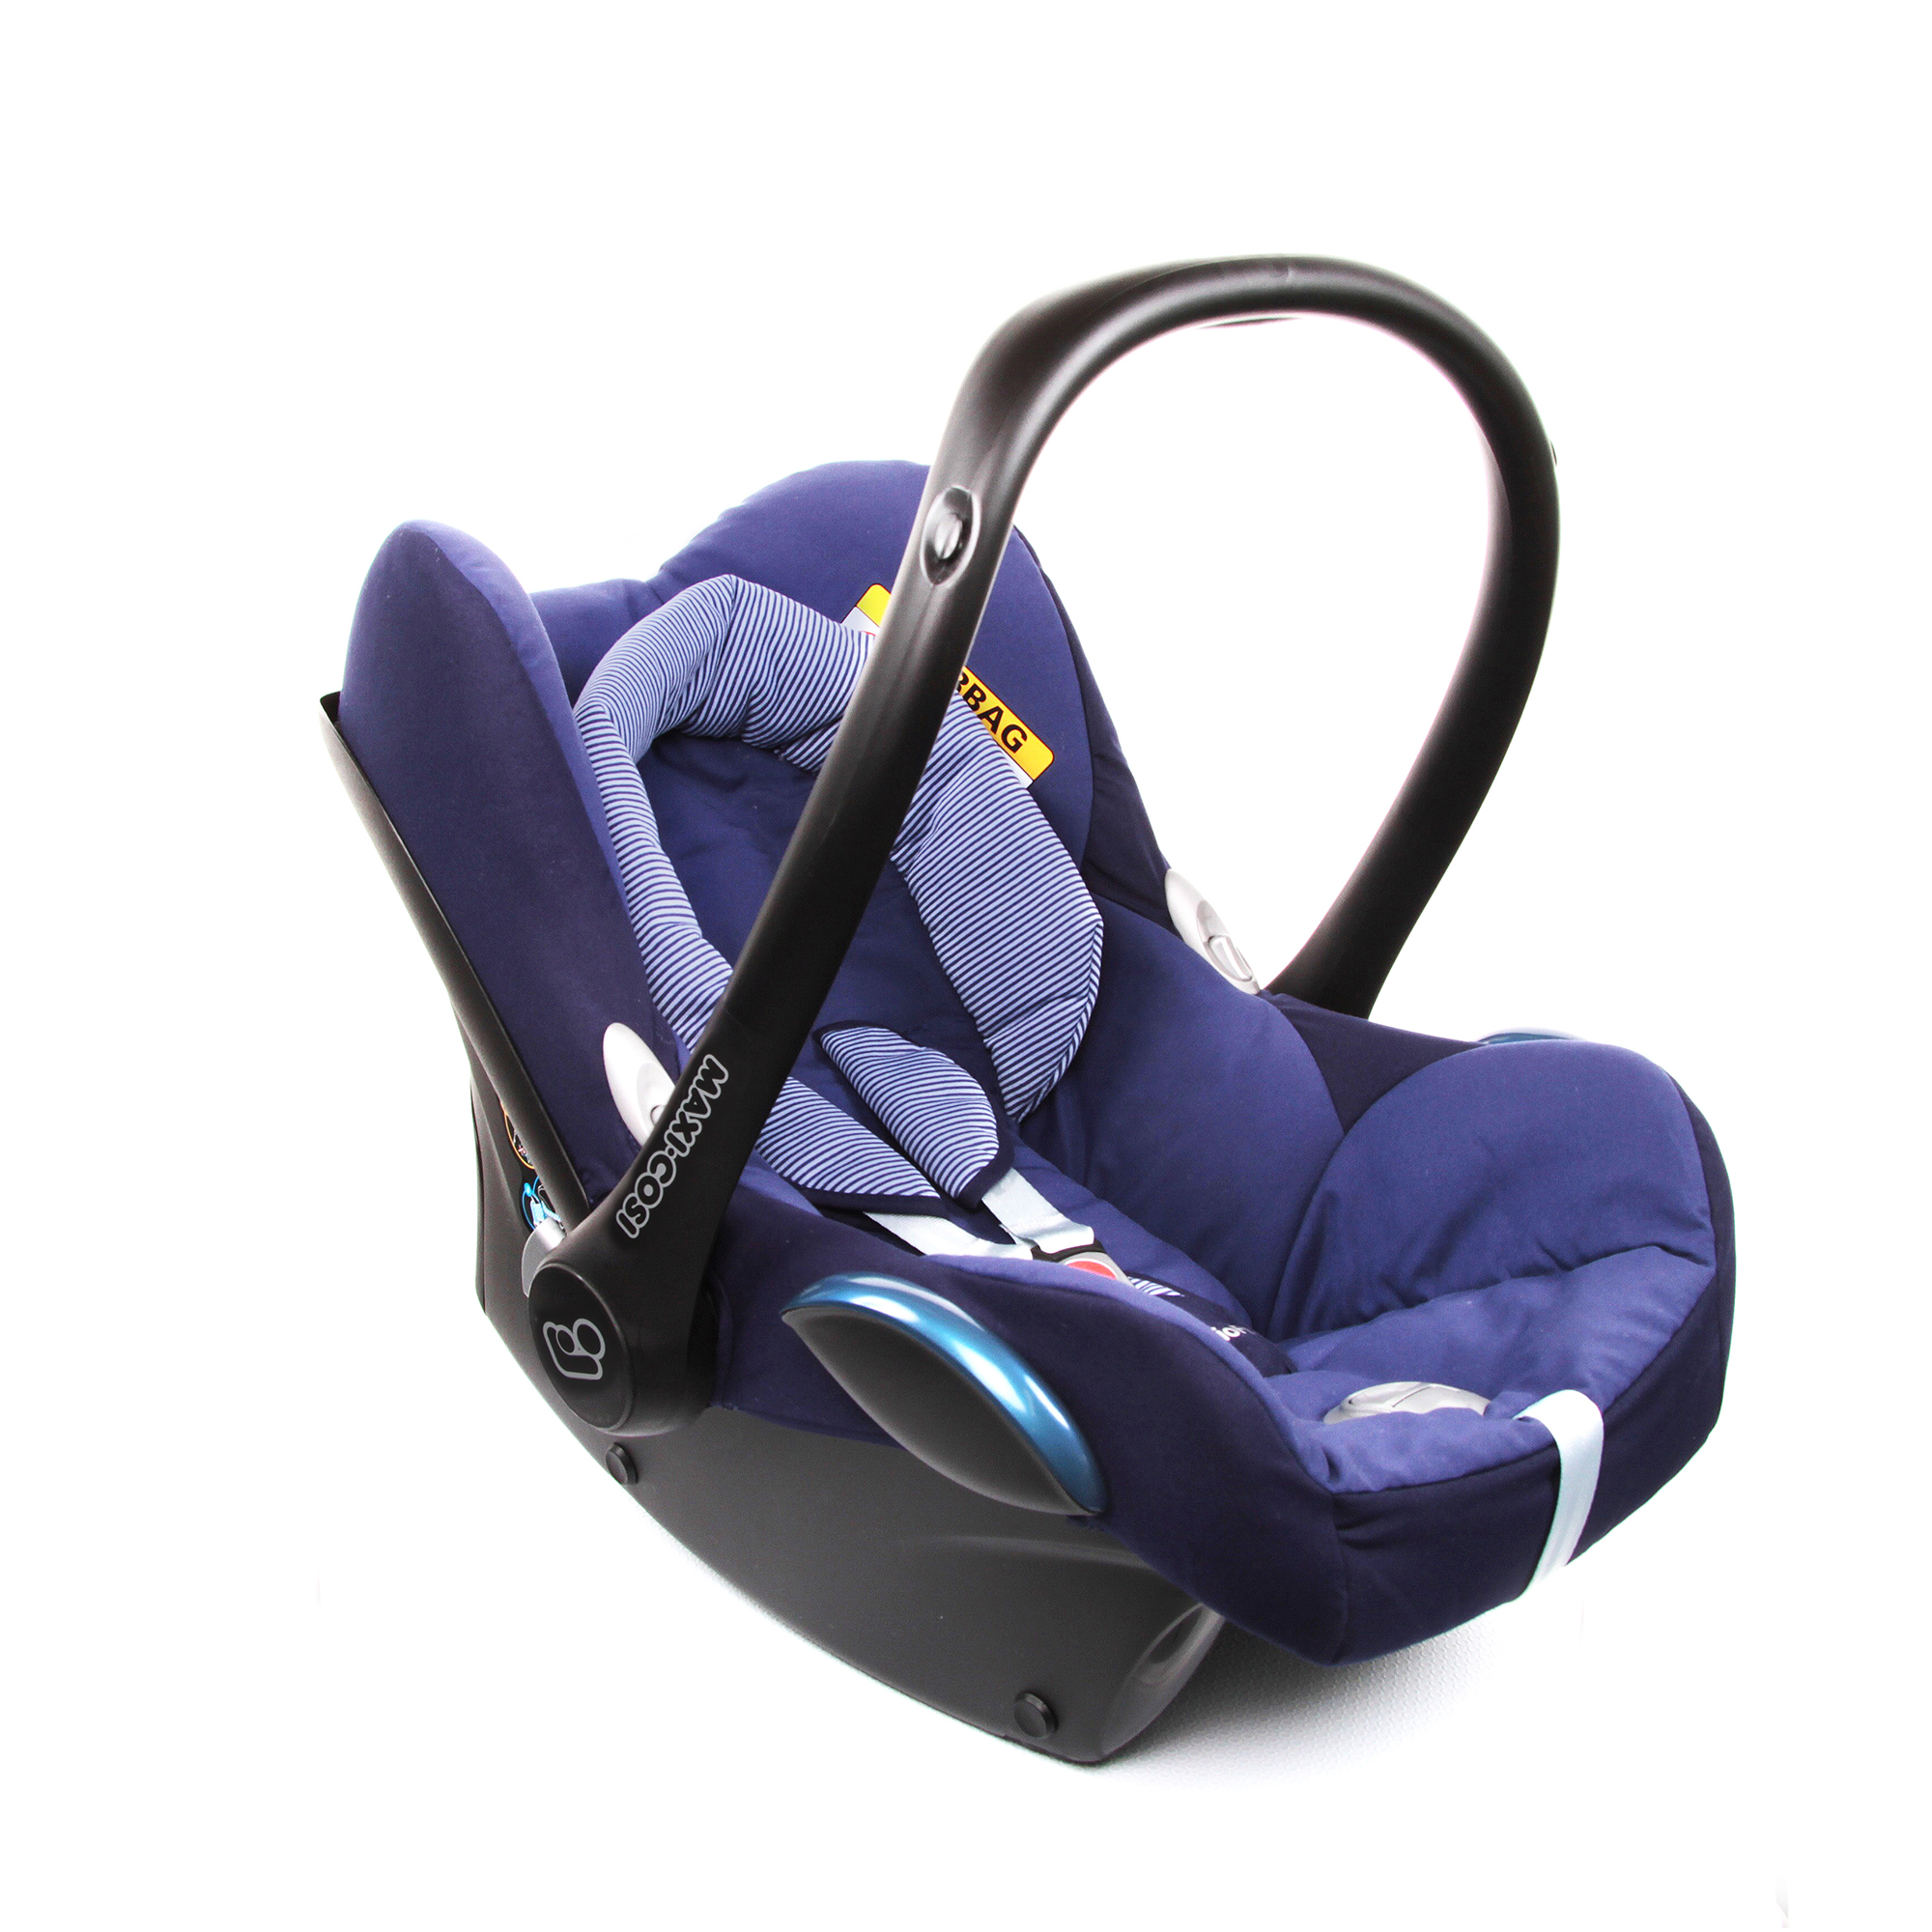 Maxi cosi infant carrier cabriofix 2017 river blue buy for Housse maxi cosi cabriofix